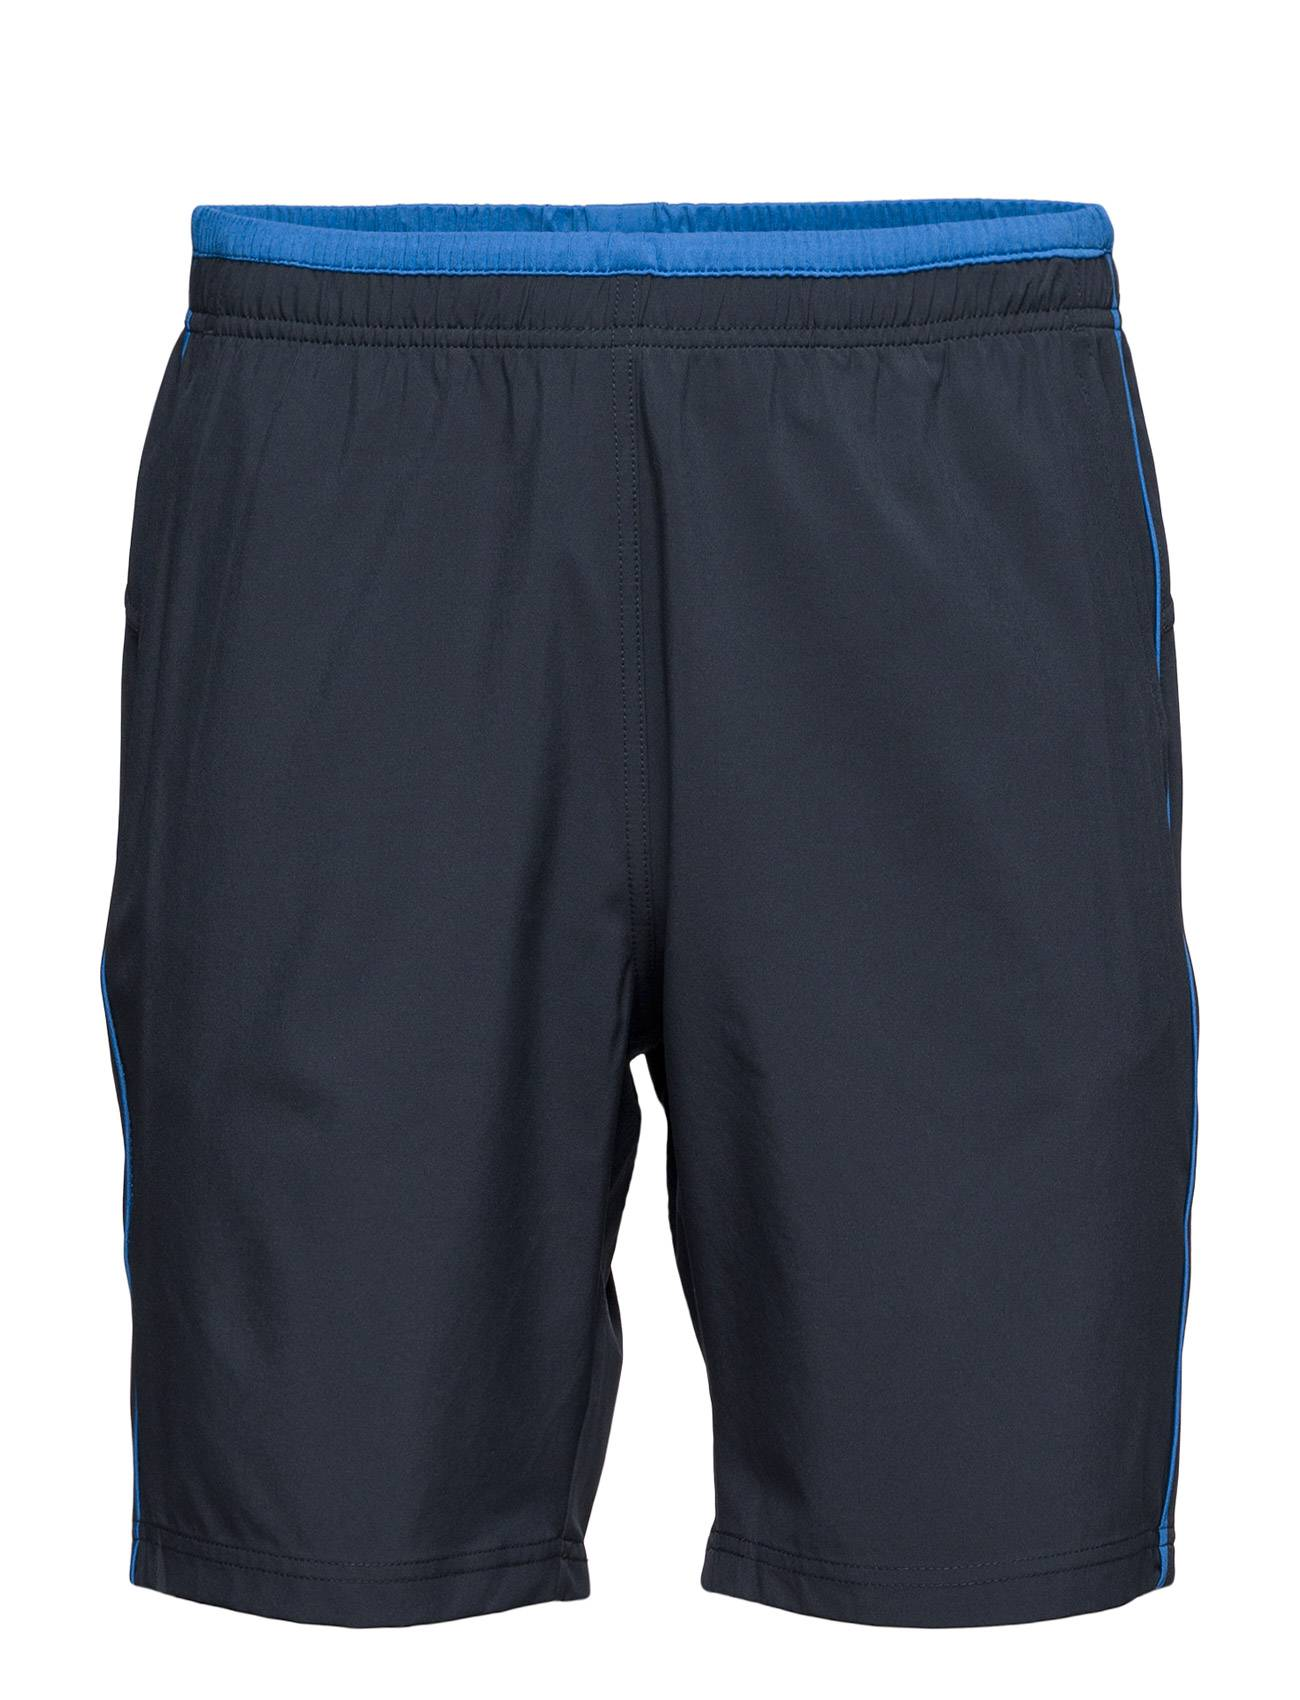 Casall M Linear Shorts